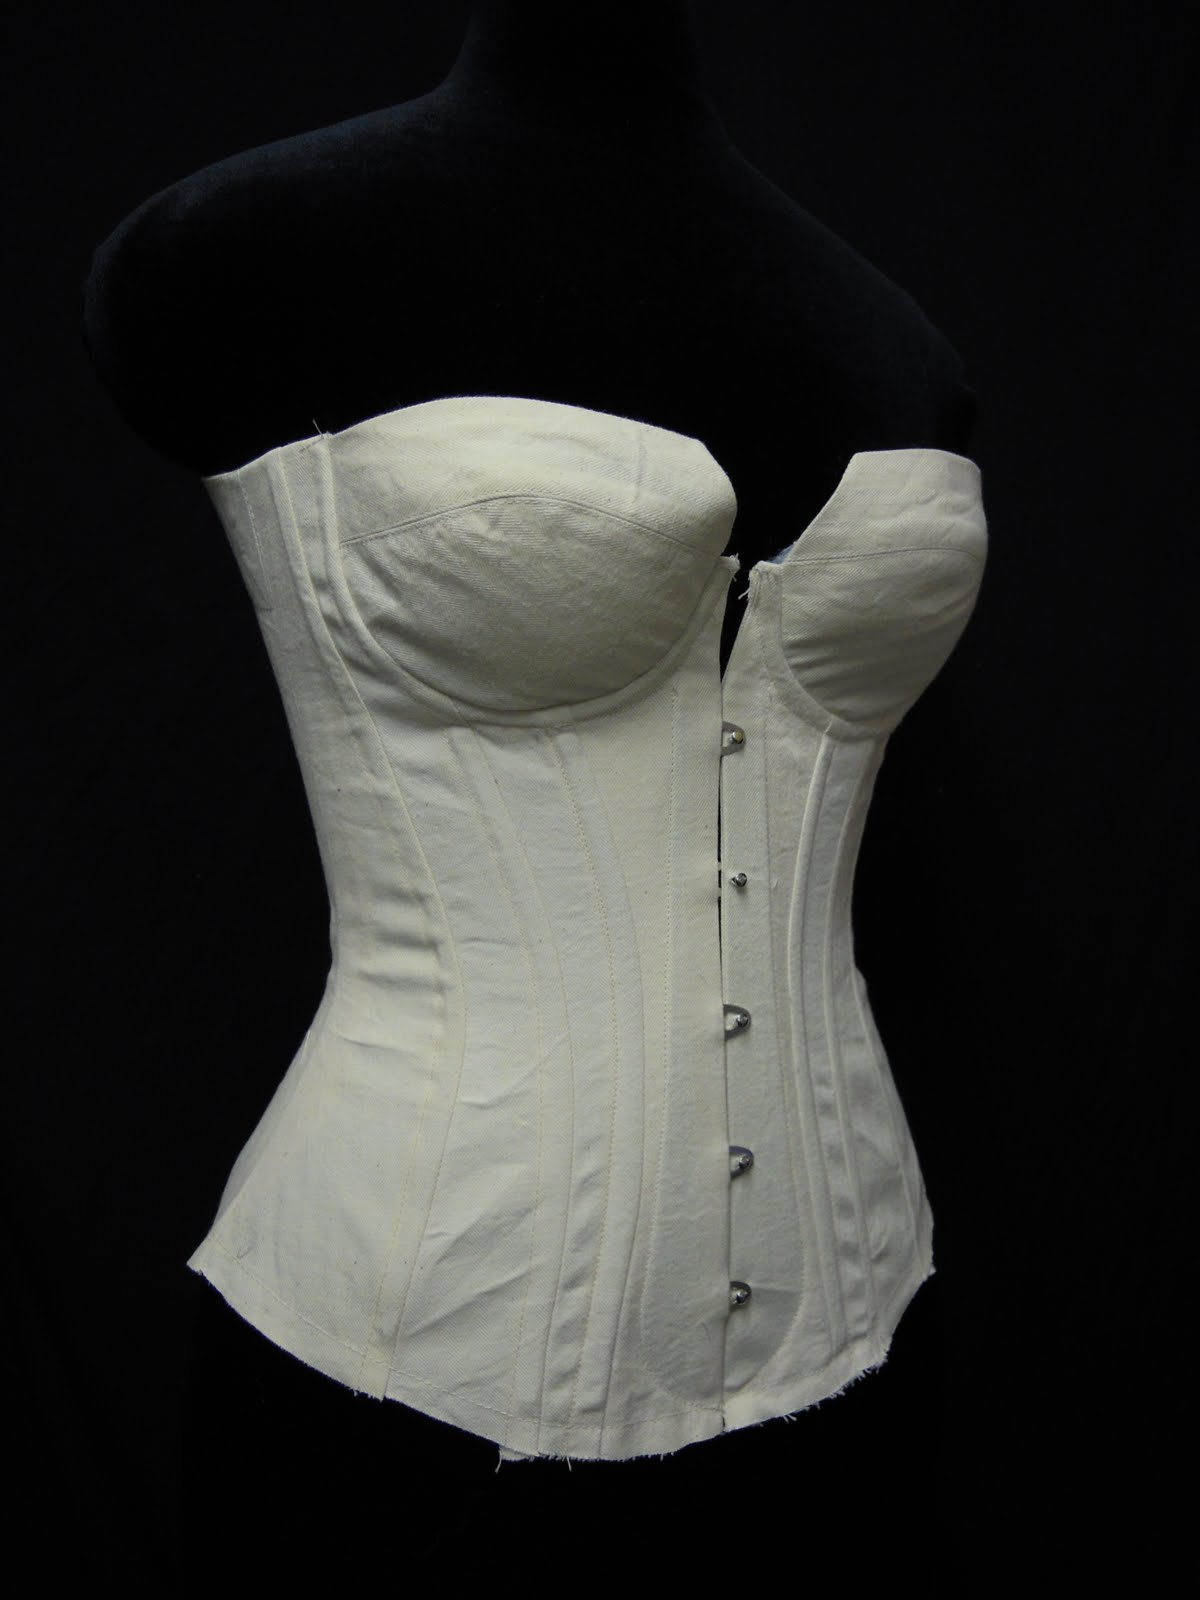 Period Corsets: Period Corsets: What is a Toile?